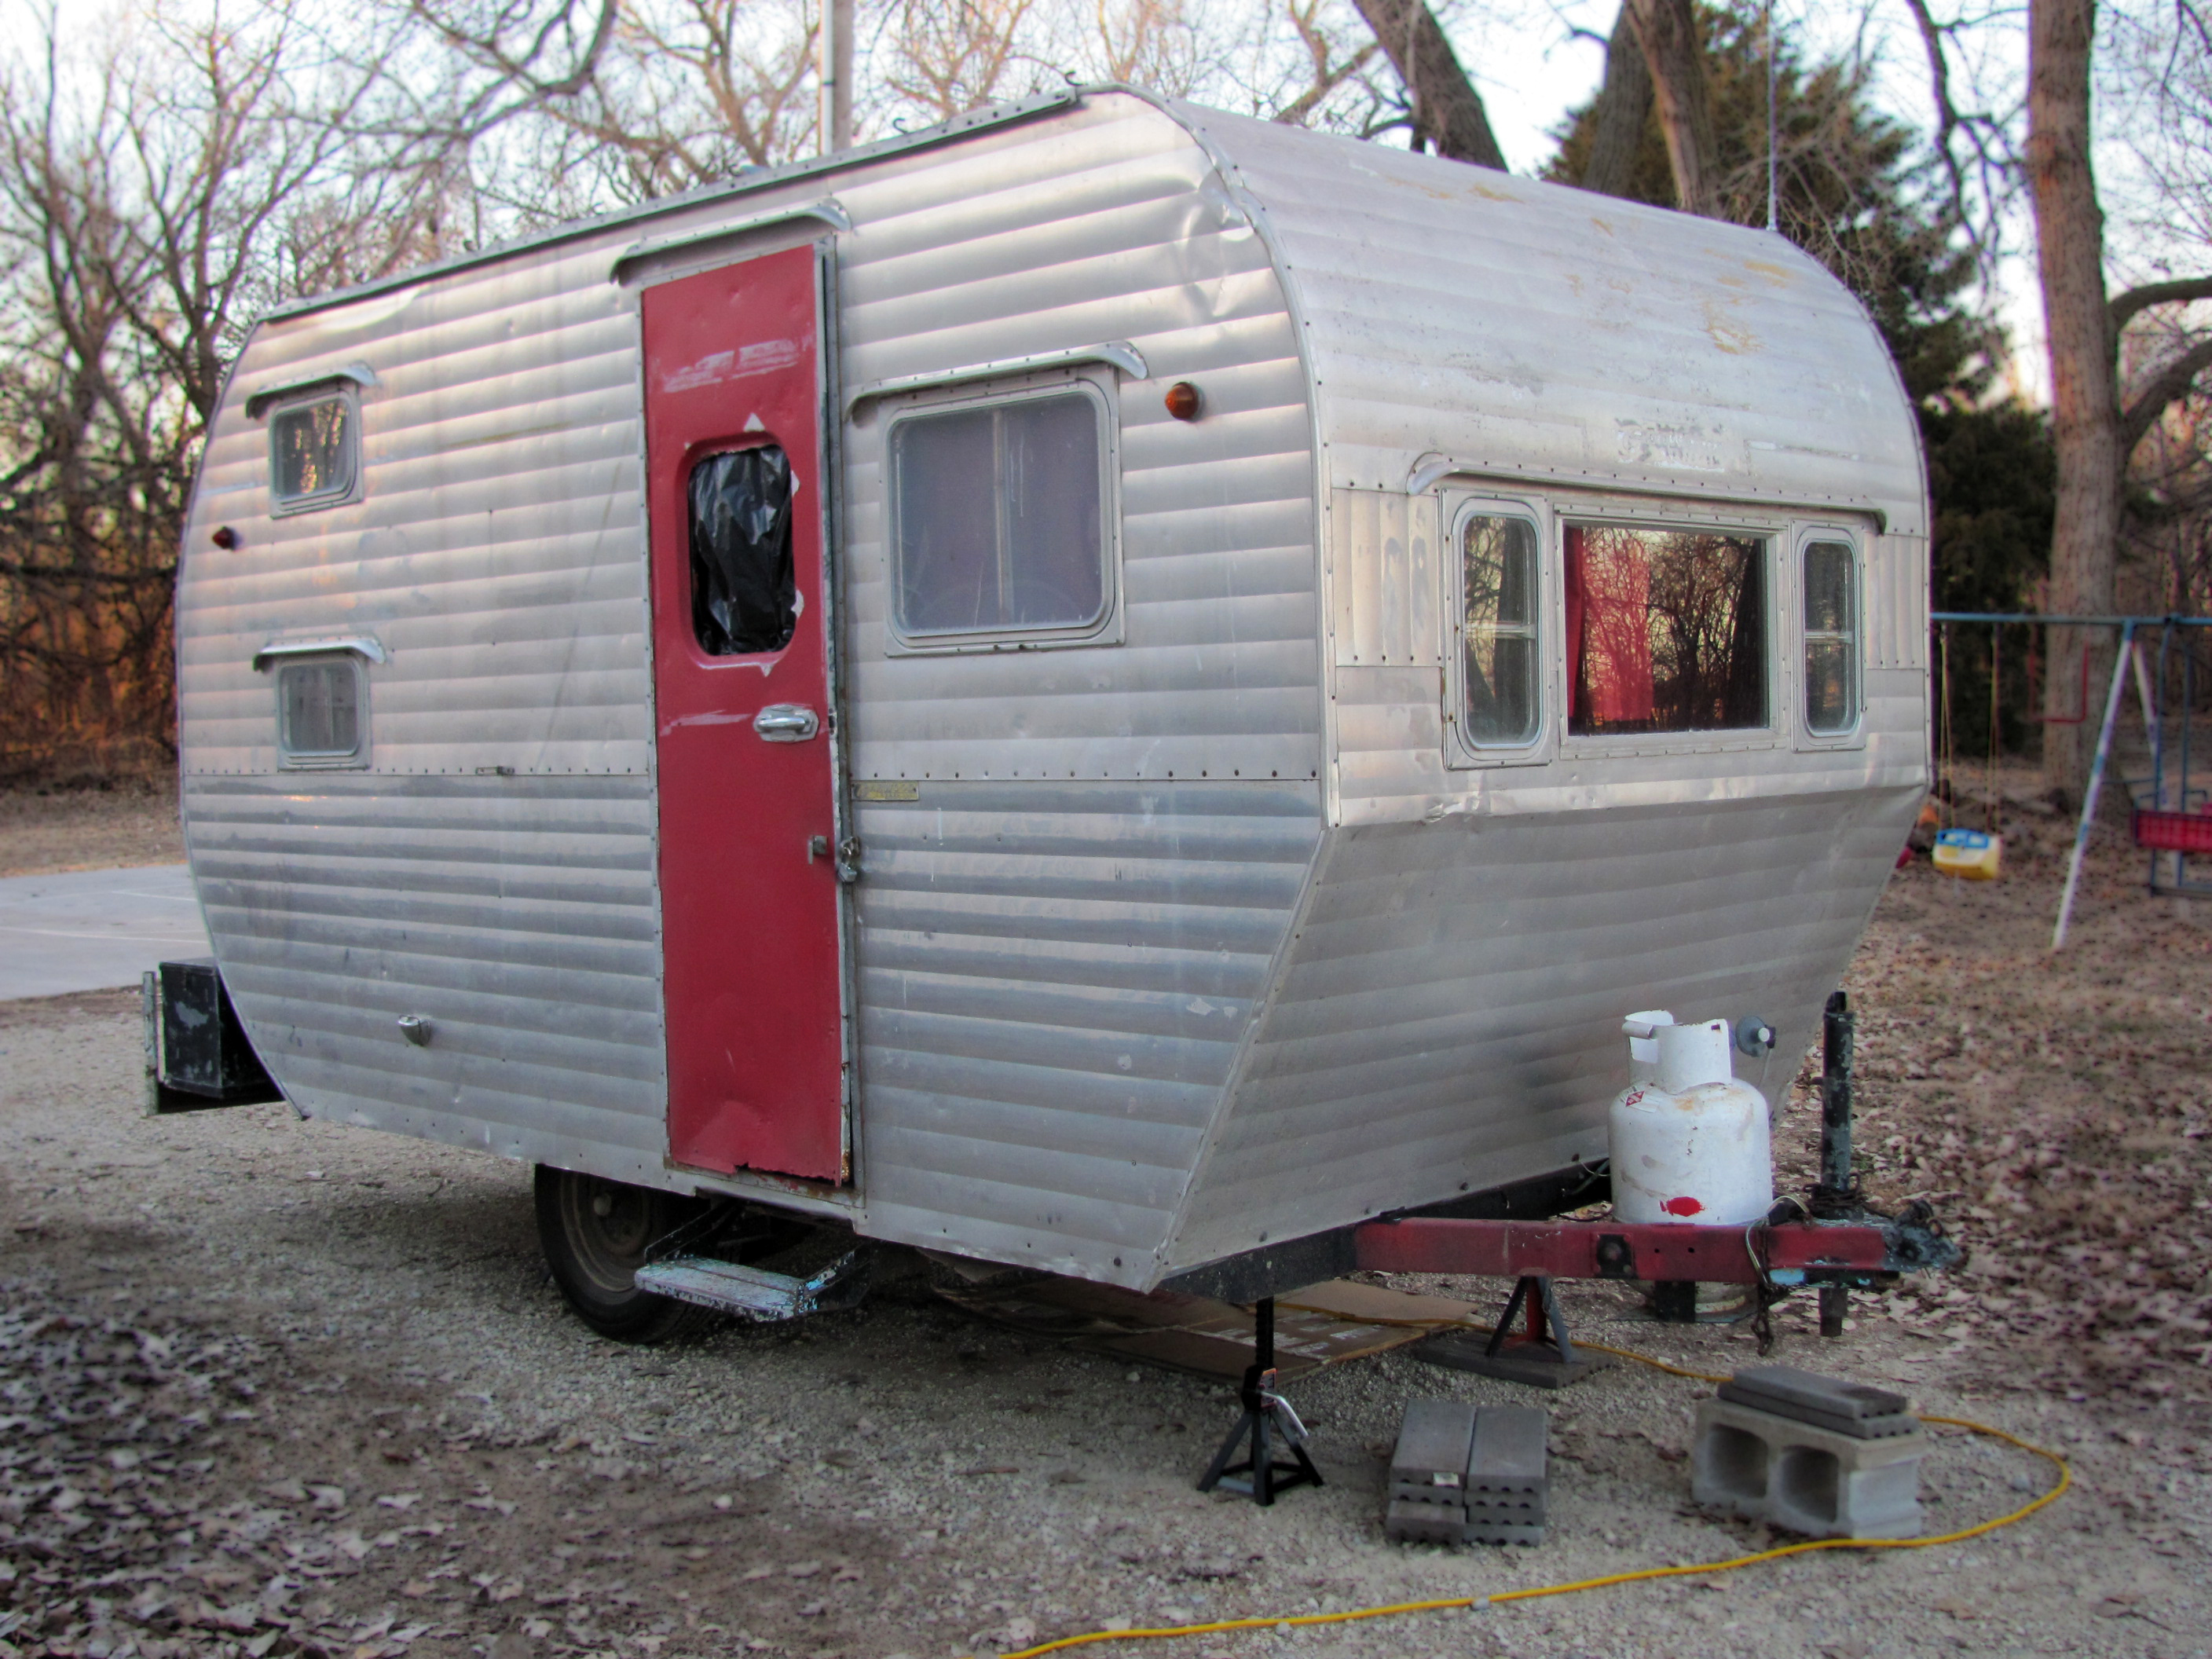 Vintage Camper - The Beginning - From Victory Road